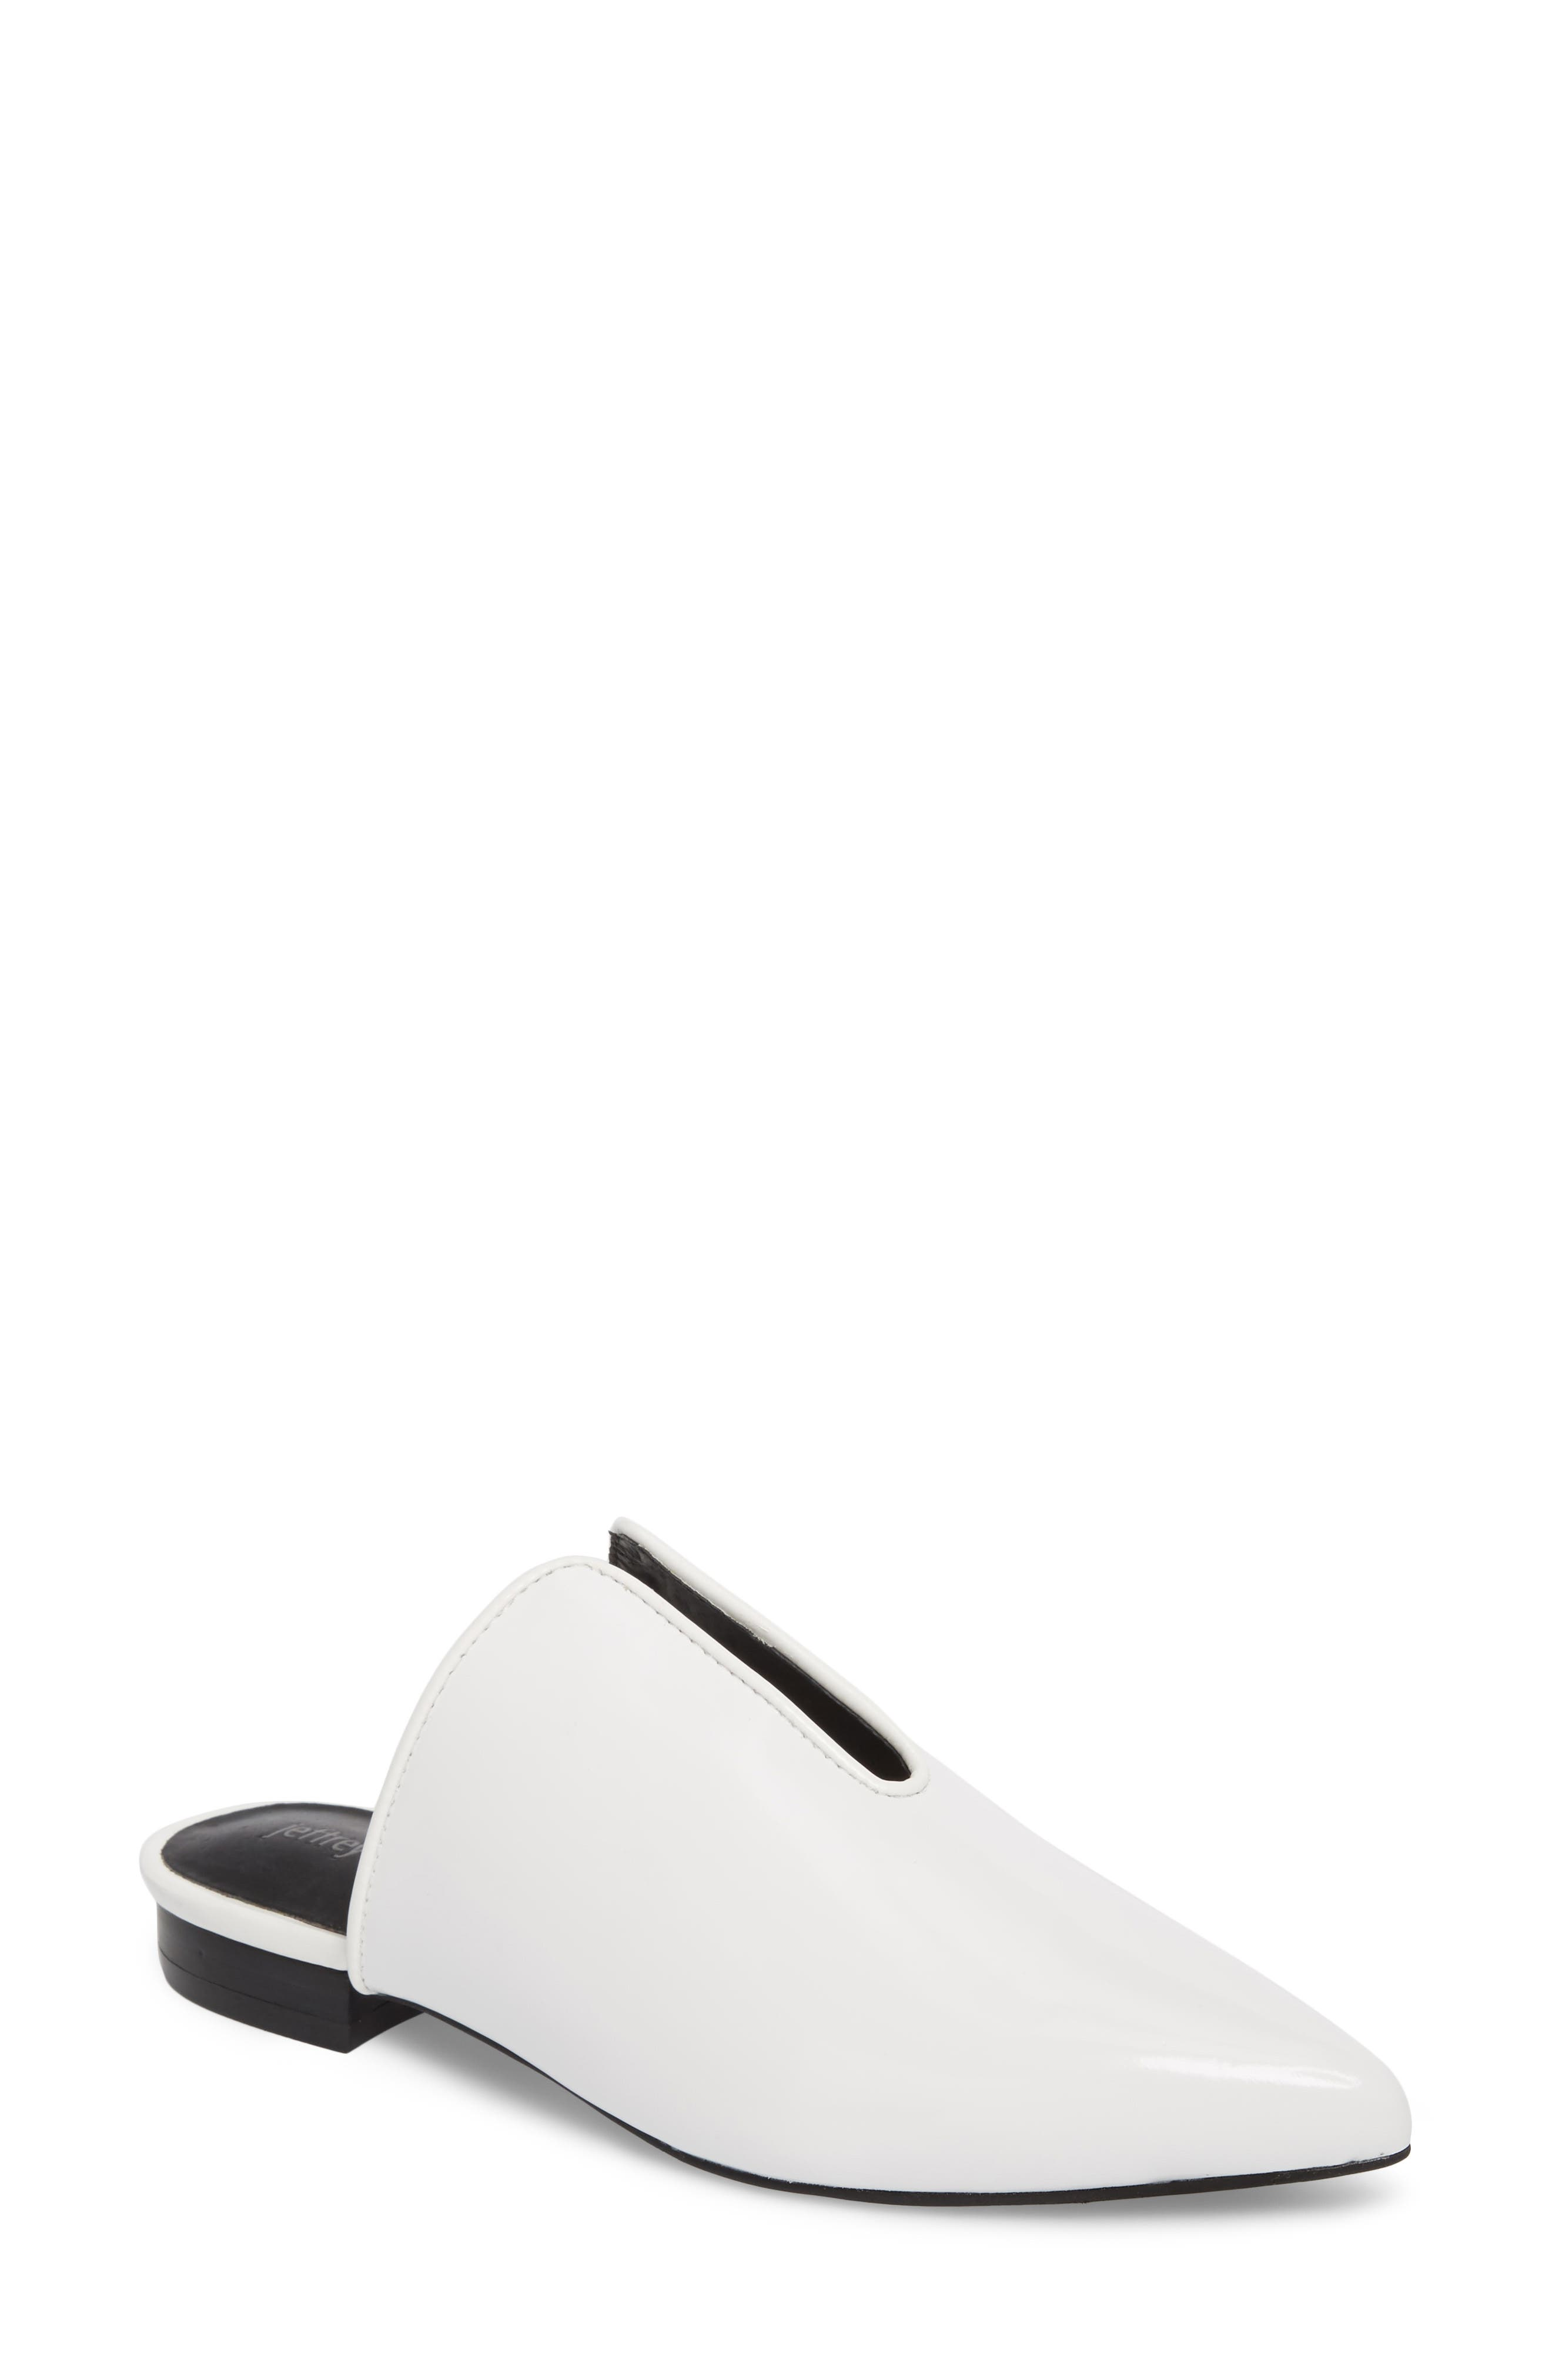 Cleos Mule,                             Main thumbnail 1, color,                             White Leather